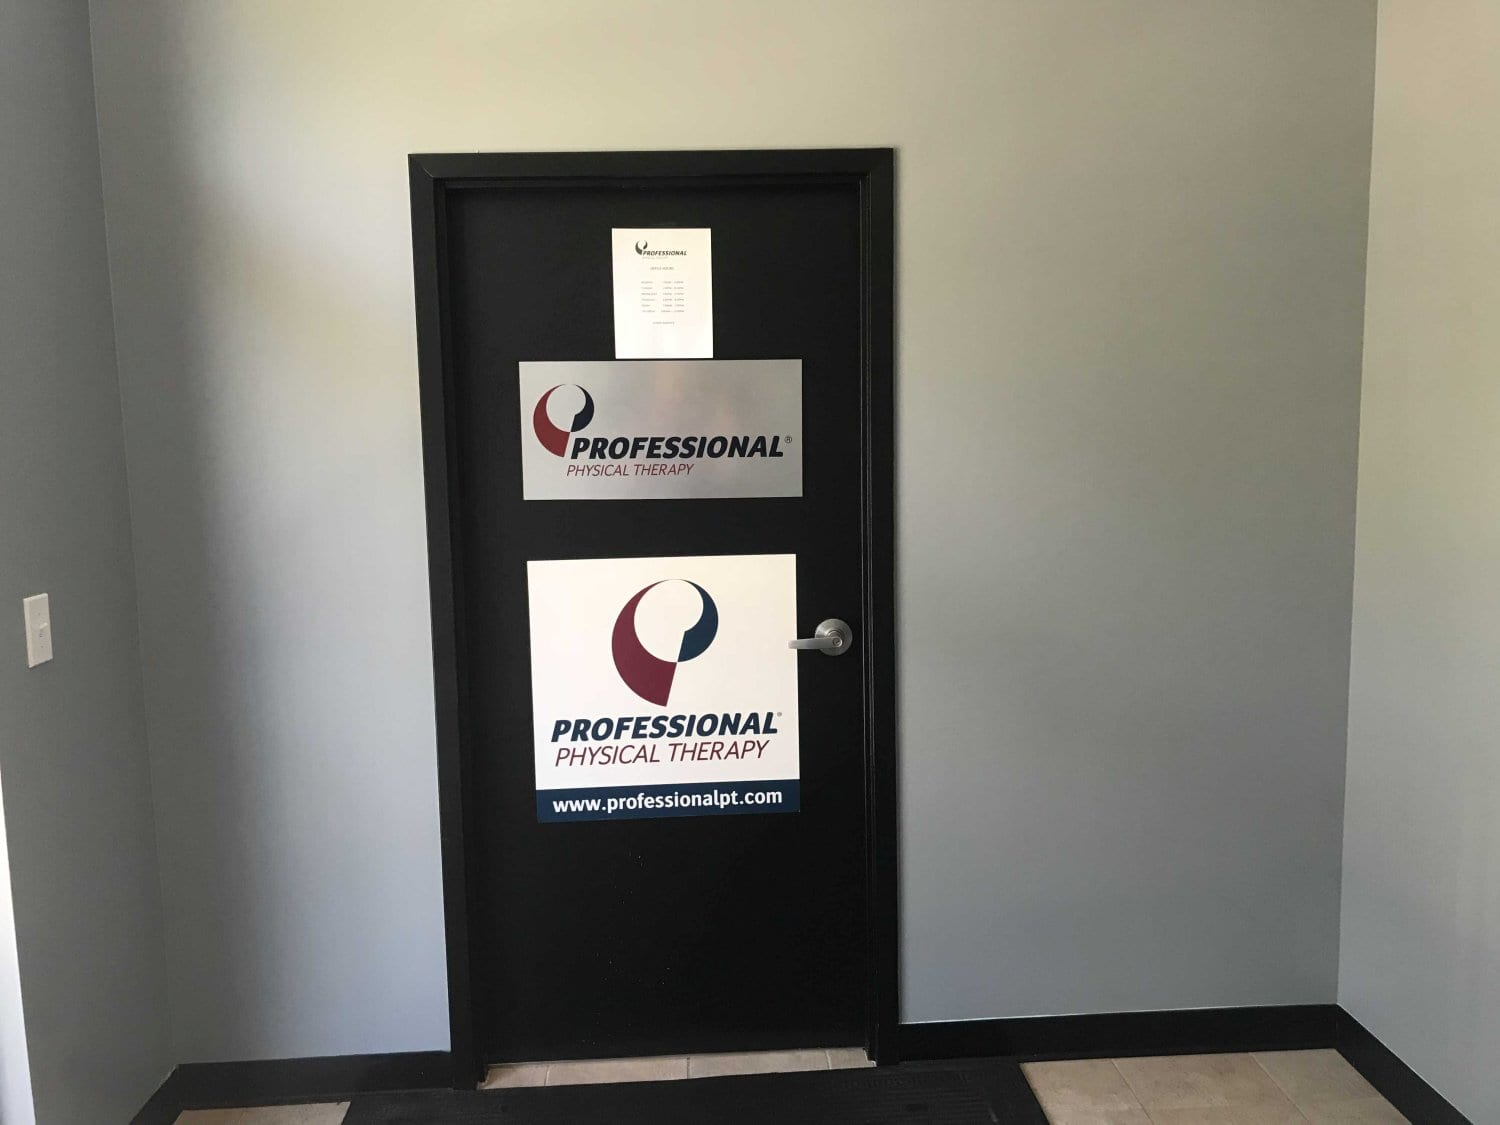 Here is an image of the door to our physical therapy clinic in Ridgefield, Connecticut.